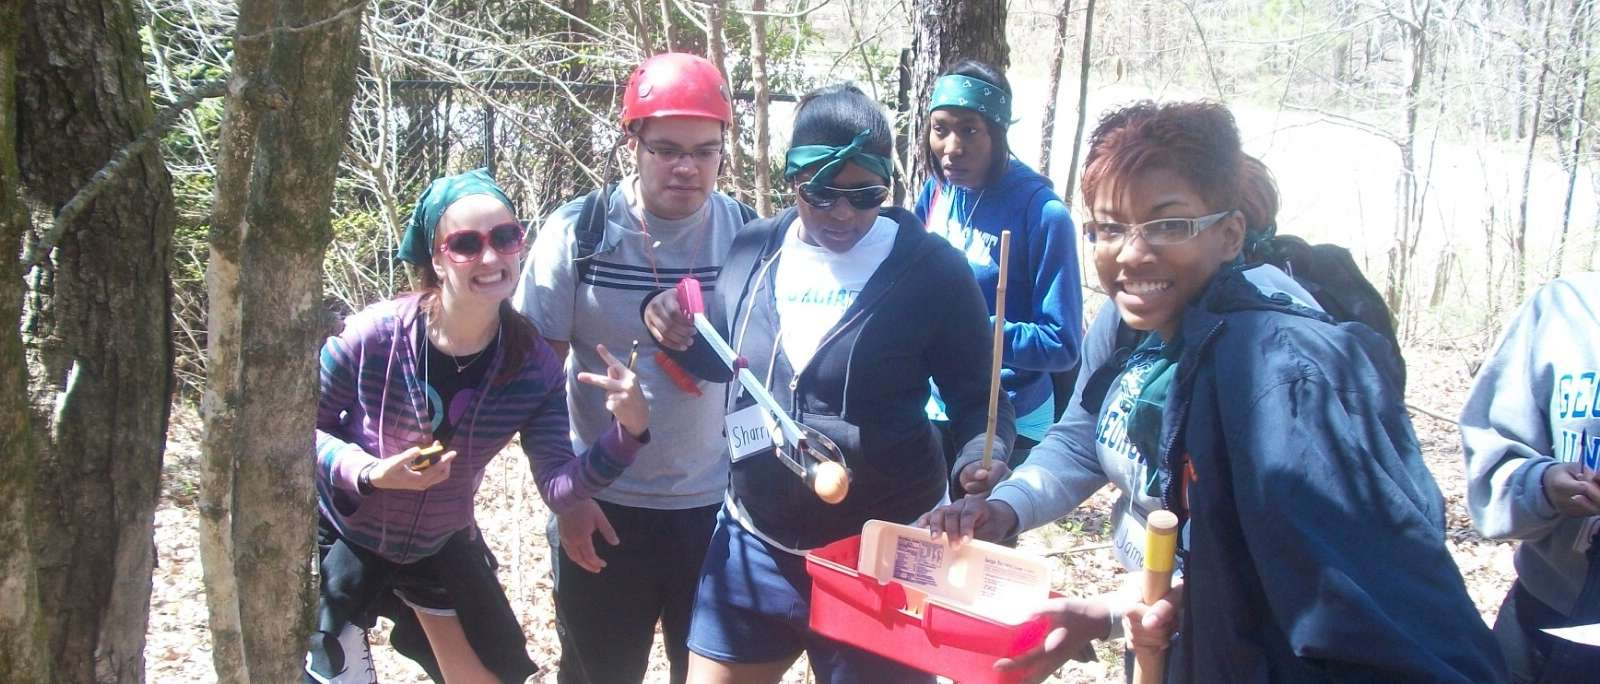 Expedition student team building adventure-happy college students retrieve egg